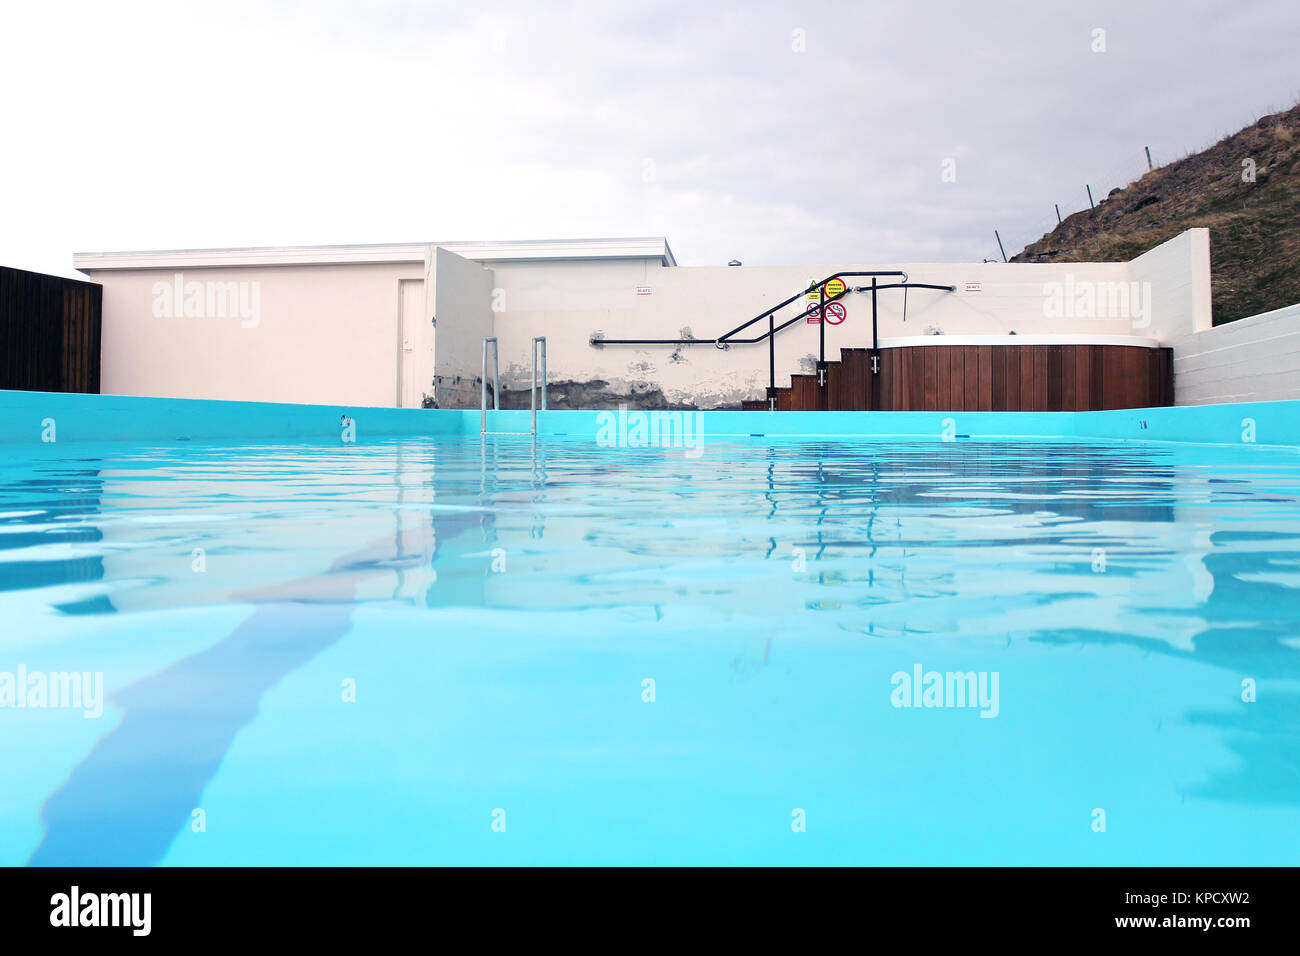 Geothermal Swimming Pool Stock Photos Geothermal Swimming Pool Stock Images Alamy